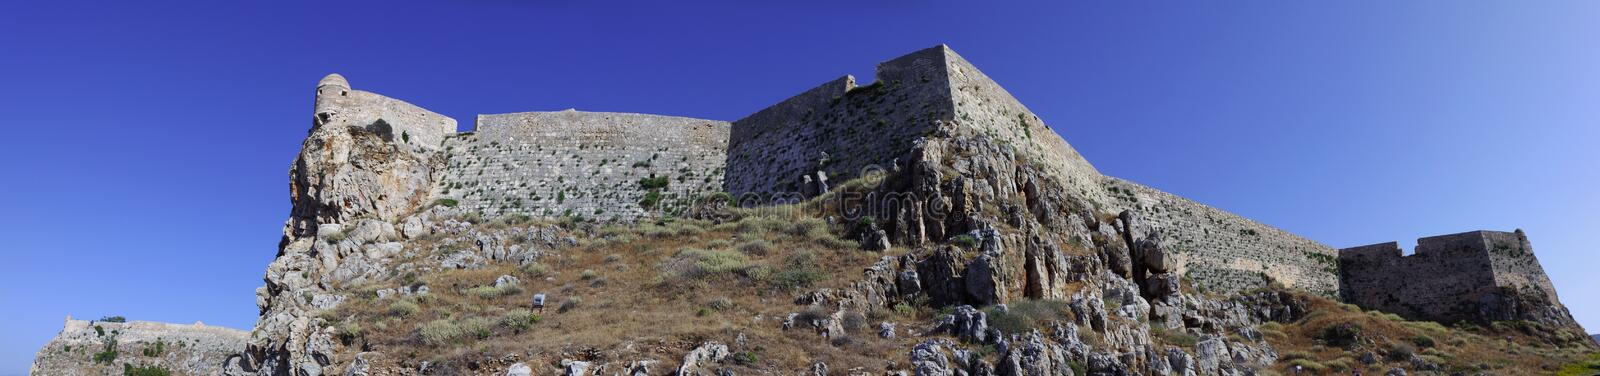 Rethymno Fortezza walls panorama royalty free stock photography